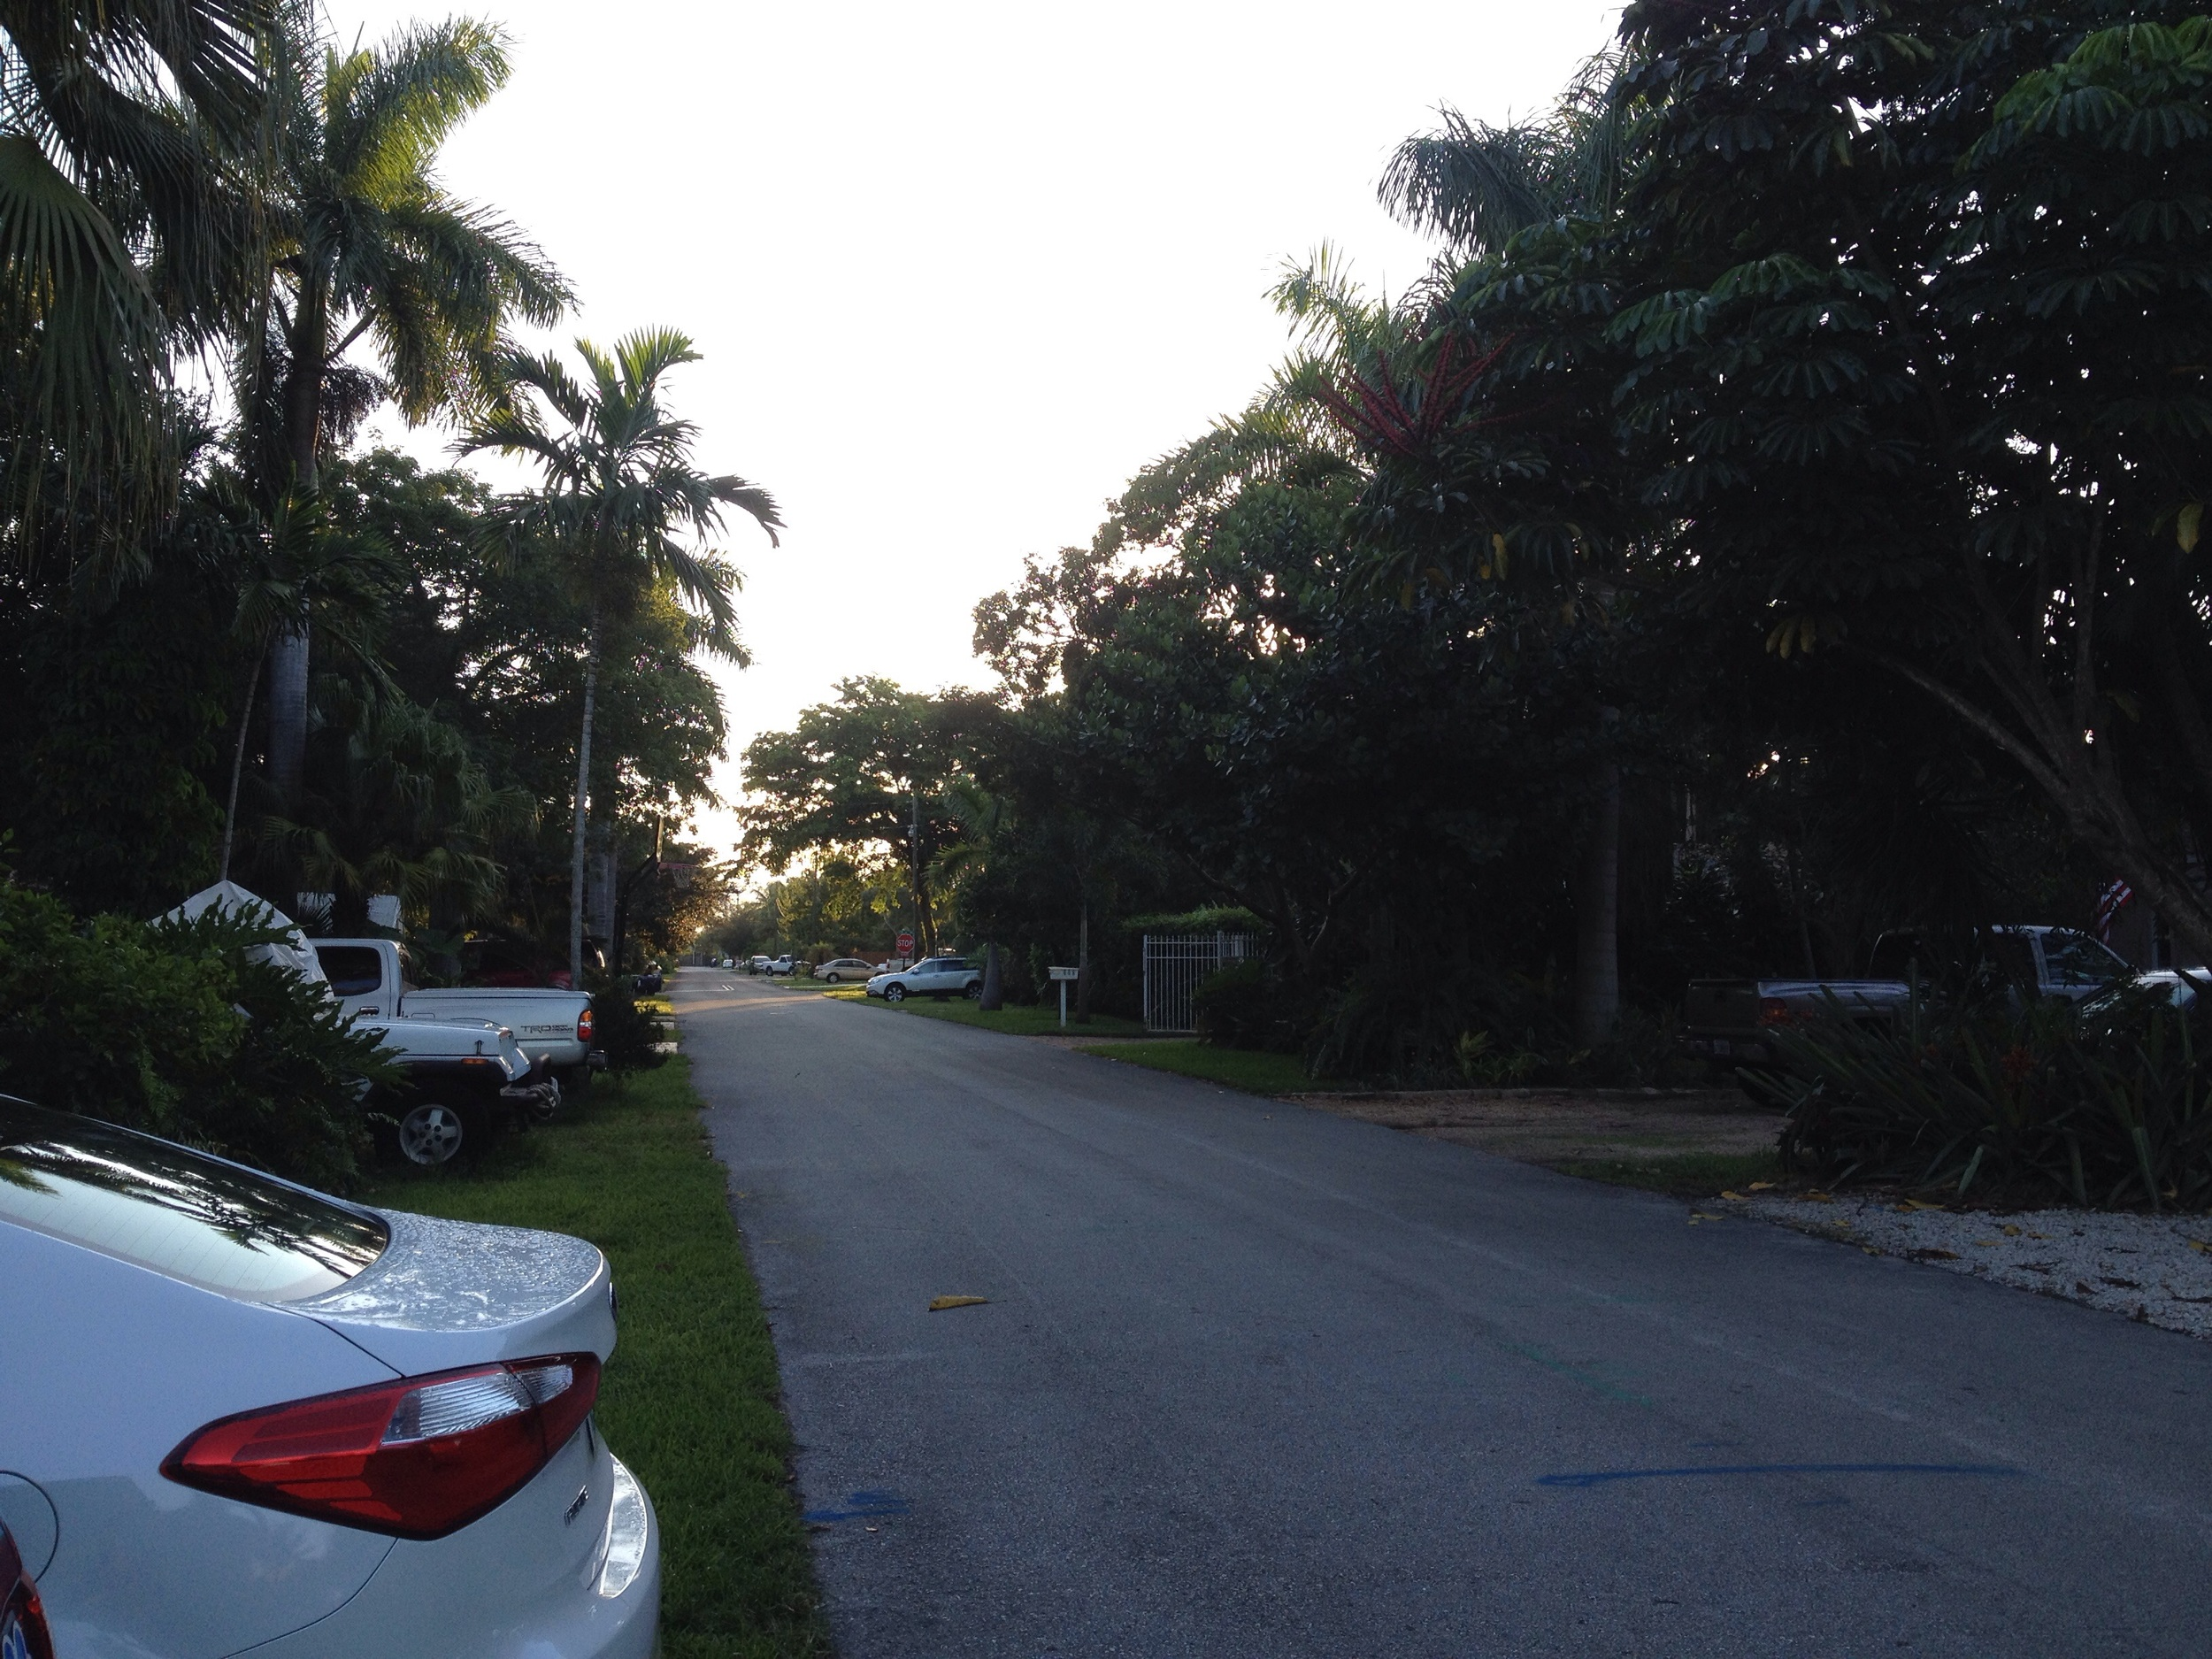 SW 13th St, early morning.